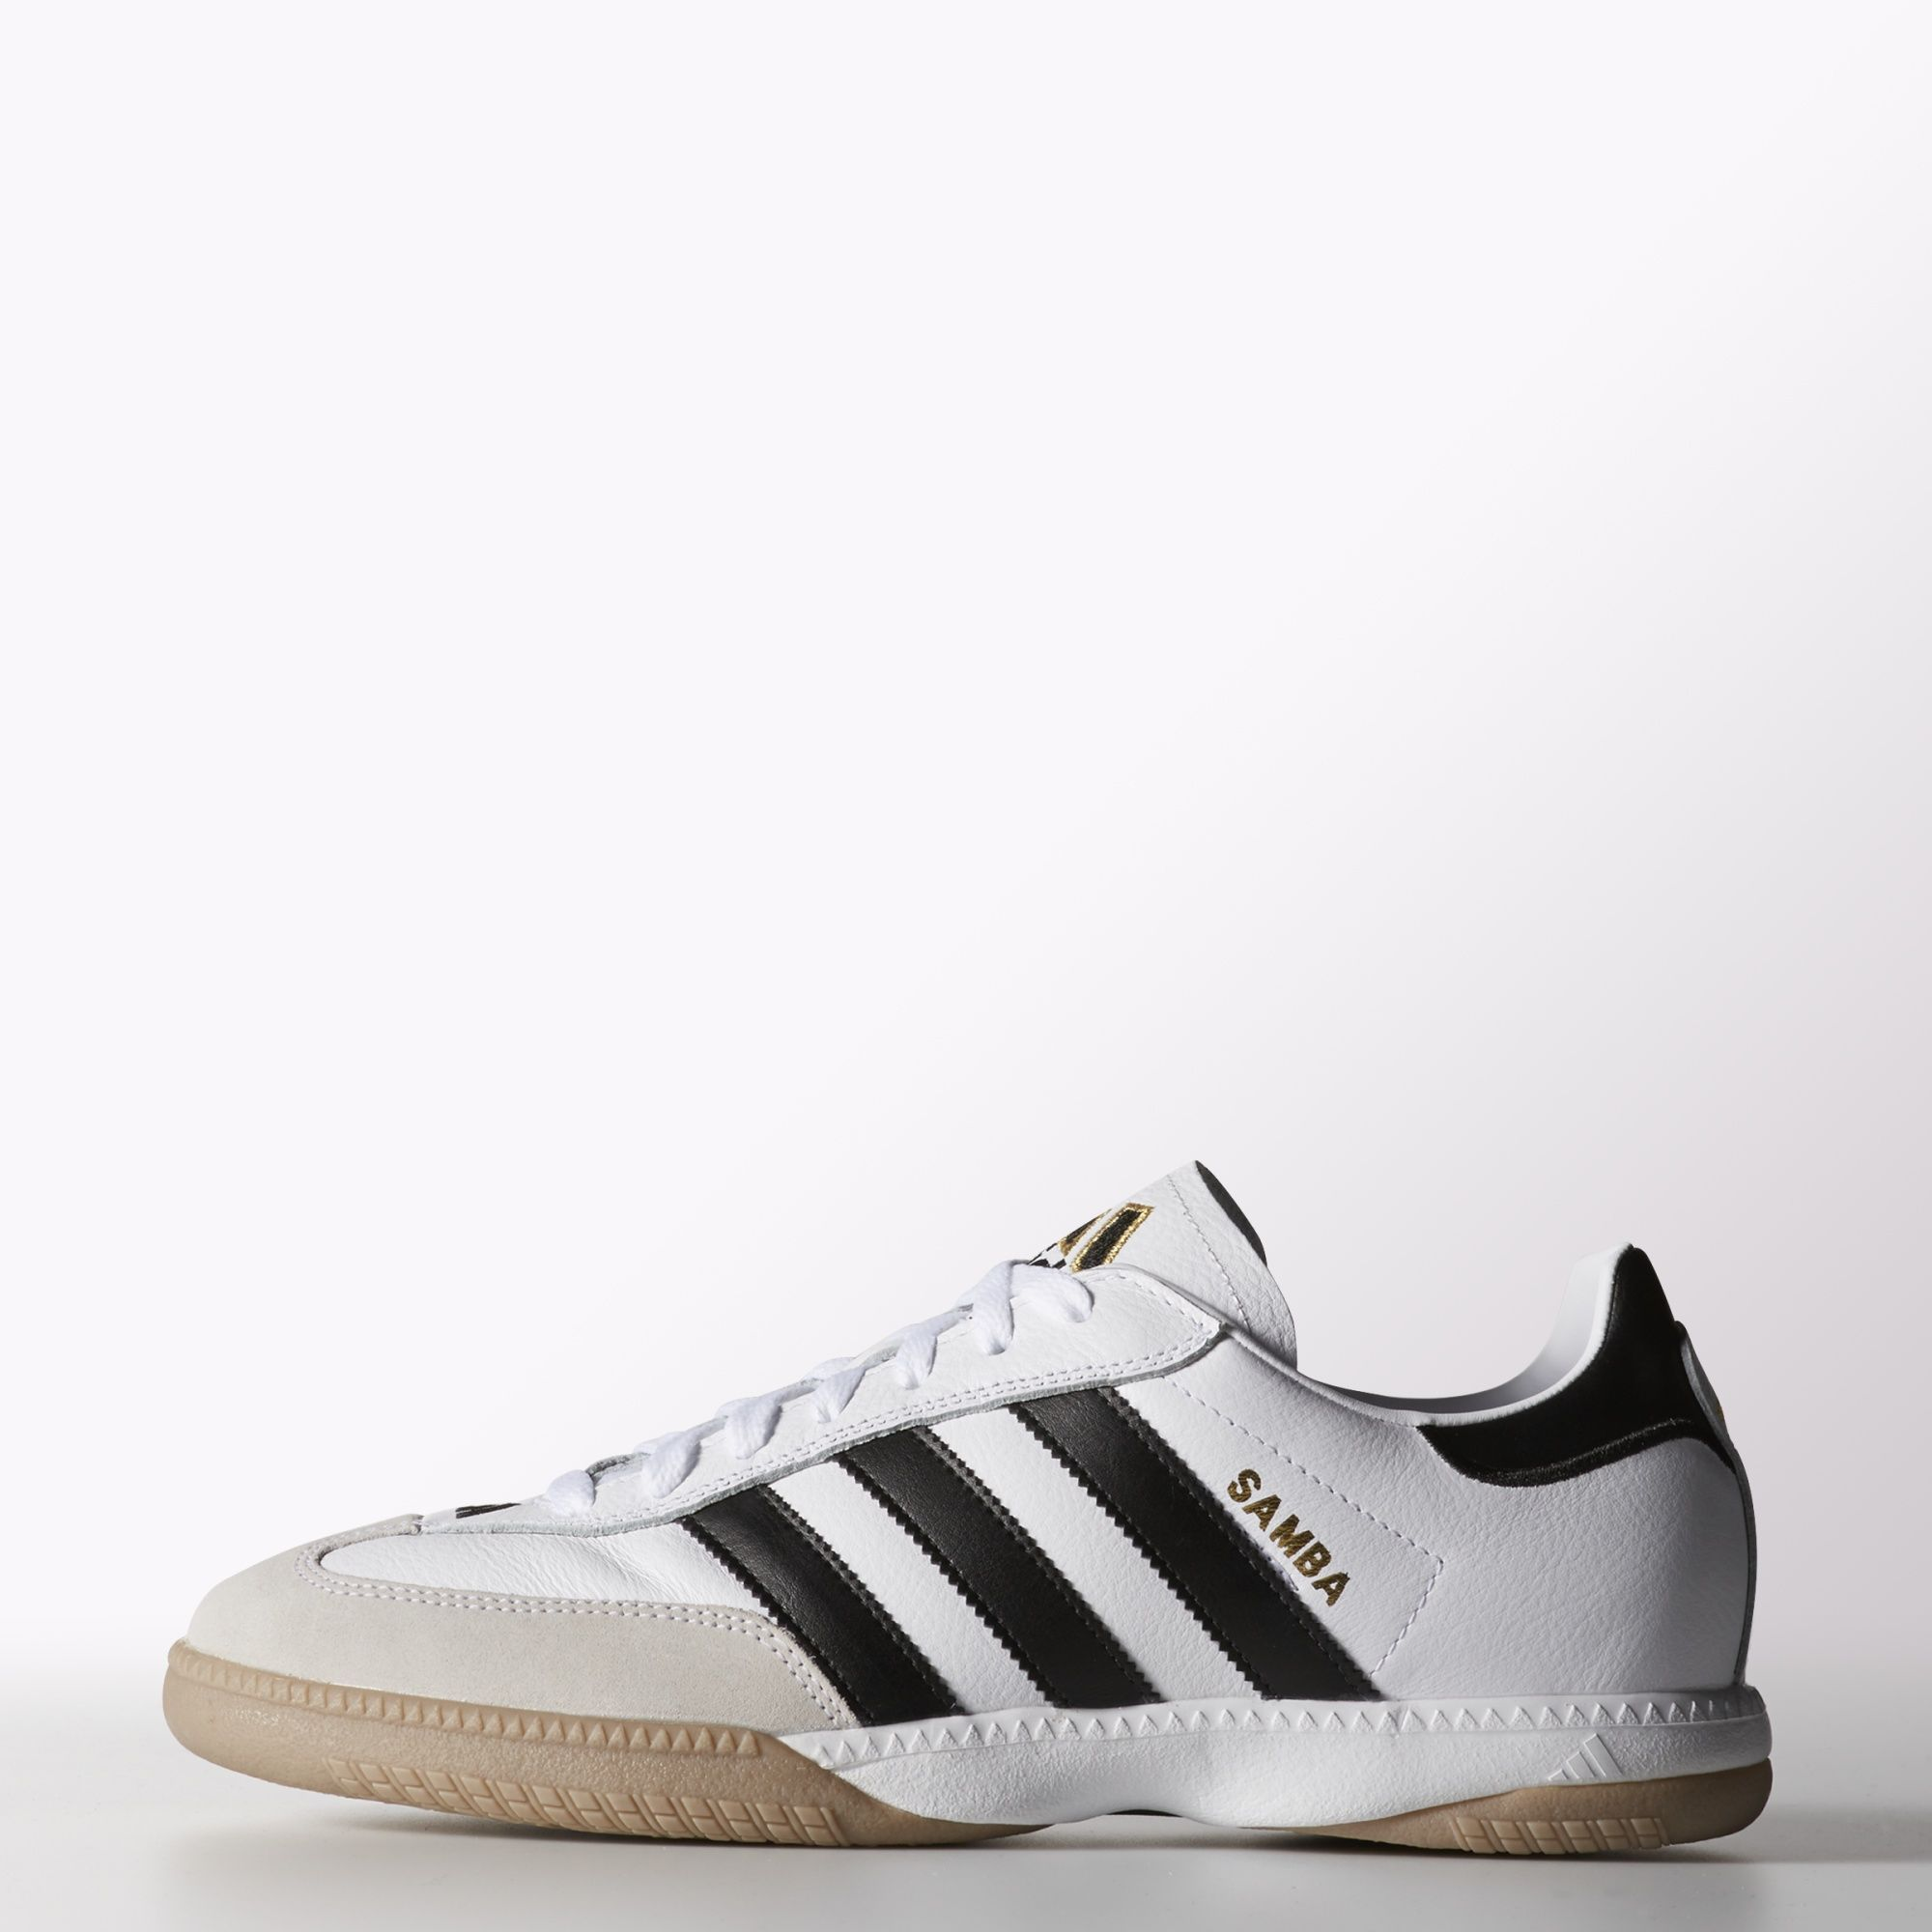 adidas Samba Millennium Leather IN Shoes - White | adidas US